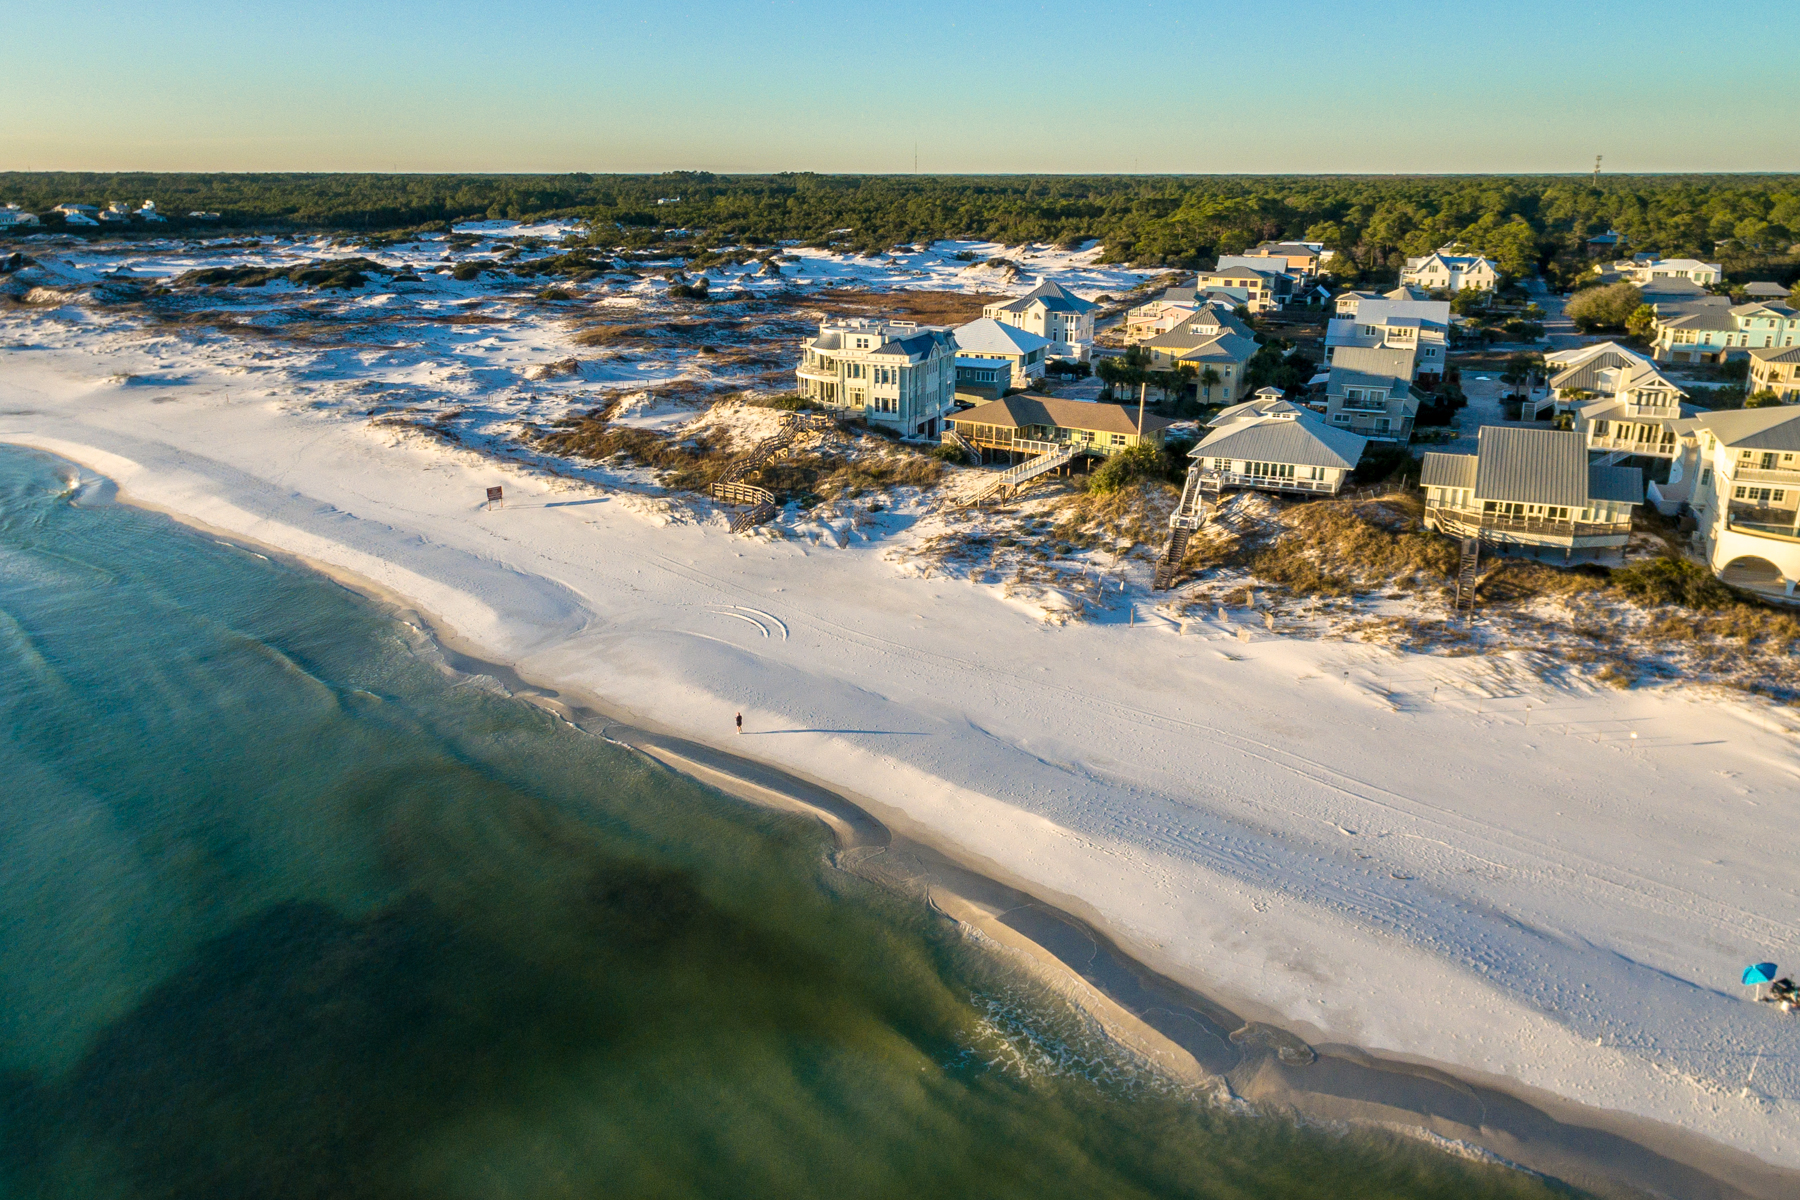 Single Family Homes for Sale at Rare Gulf-front Ownership Opportunity in Grayton Beach 79 Lupine Road Santa Rosa Beach, Florida 32459 United States